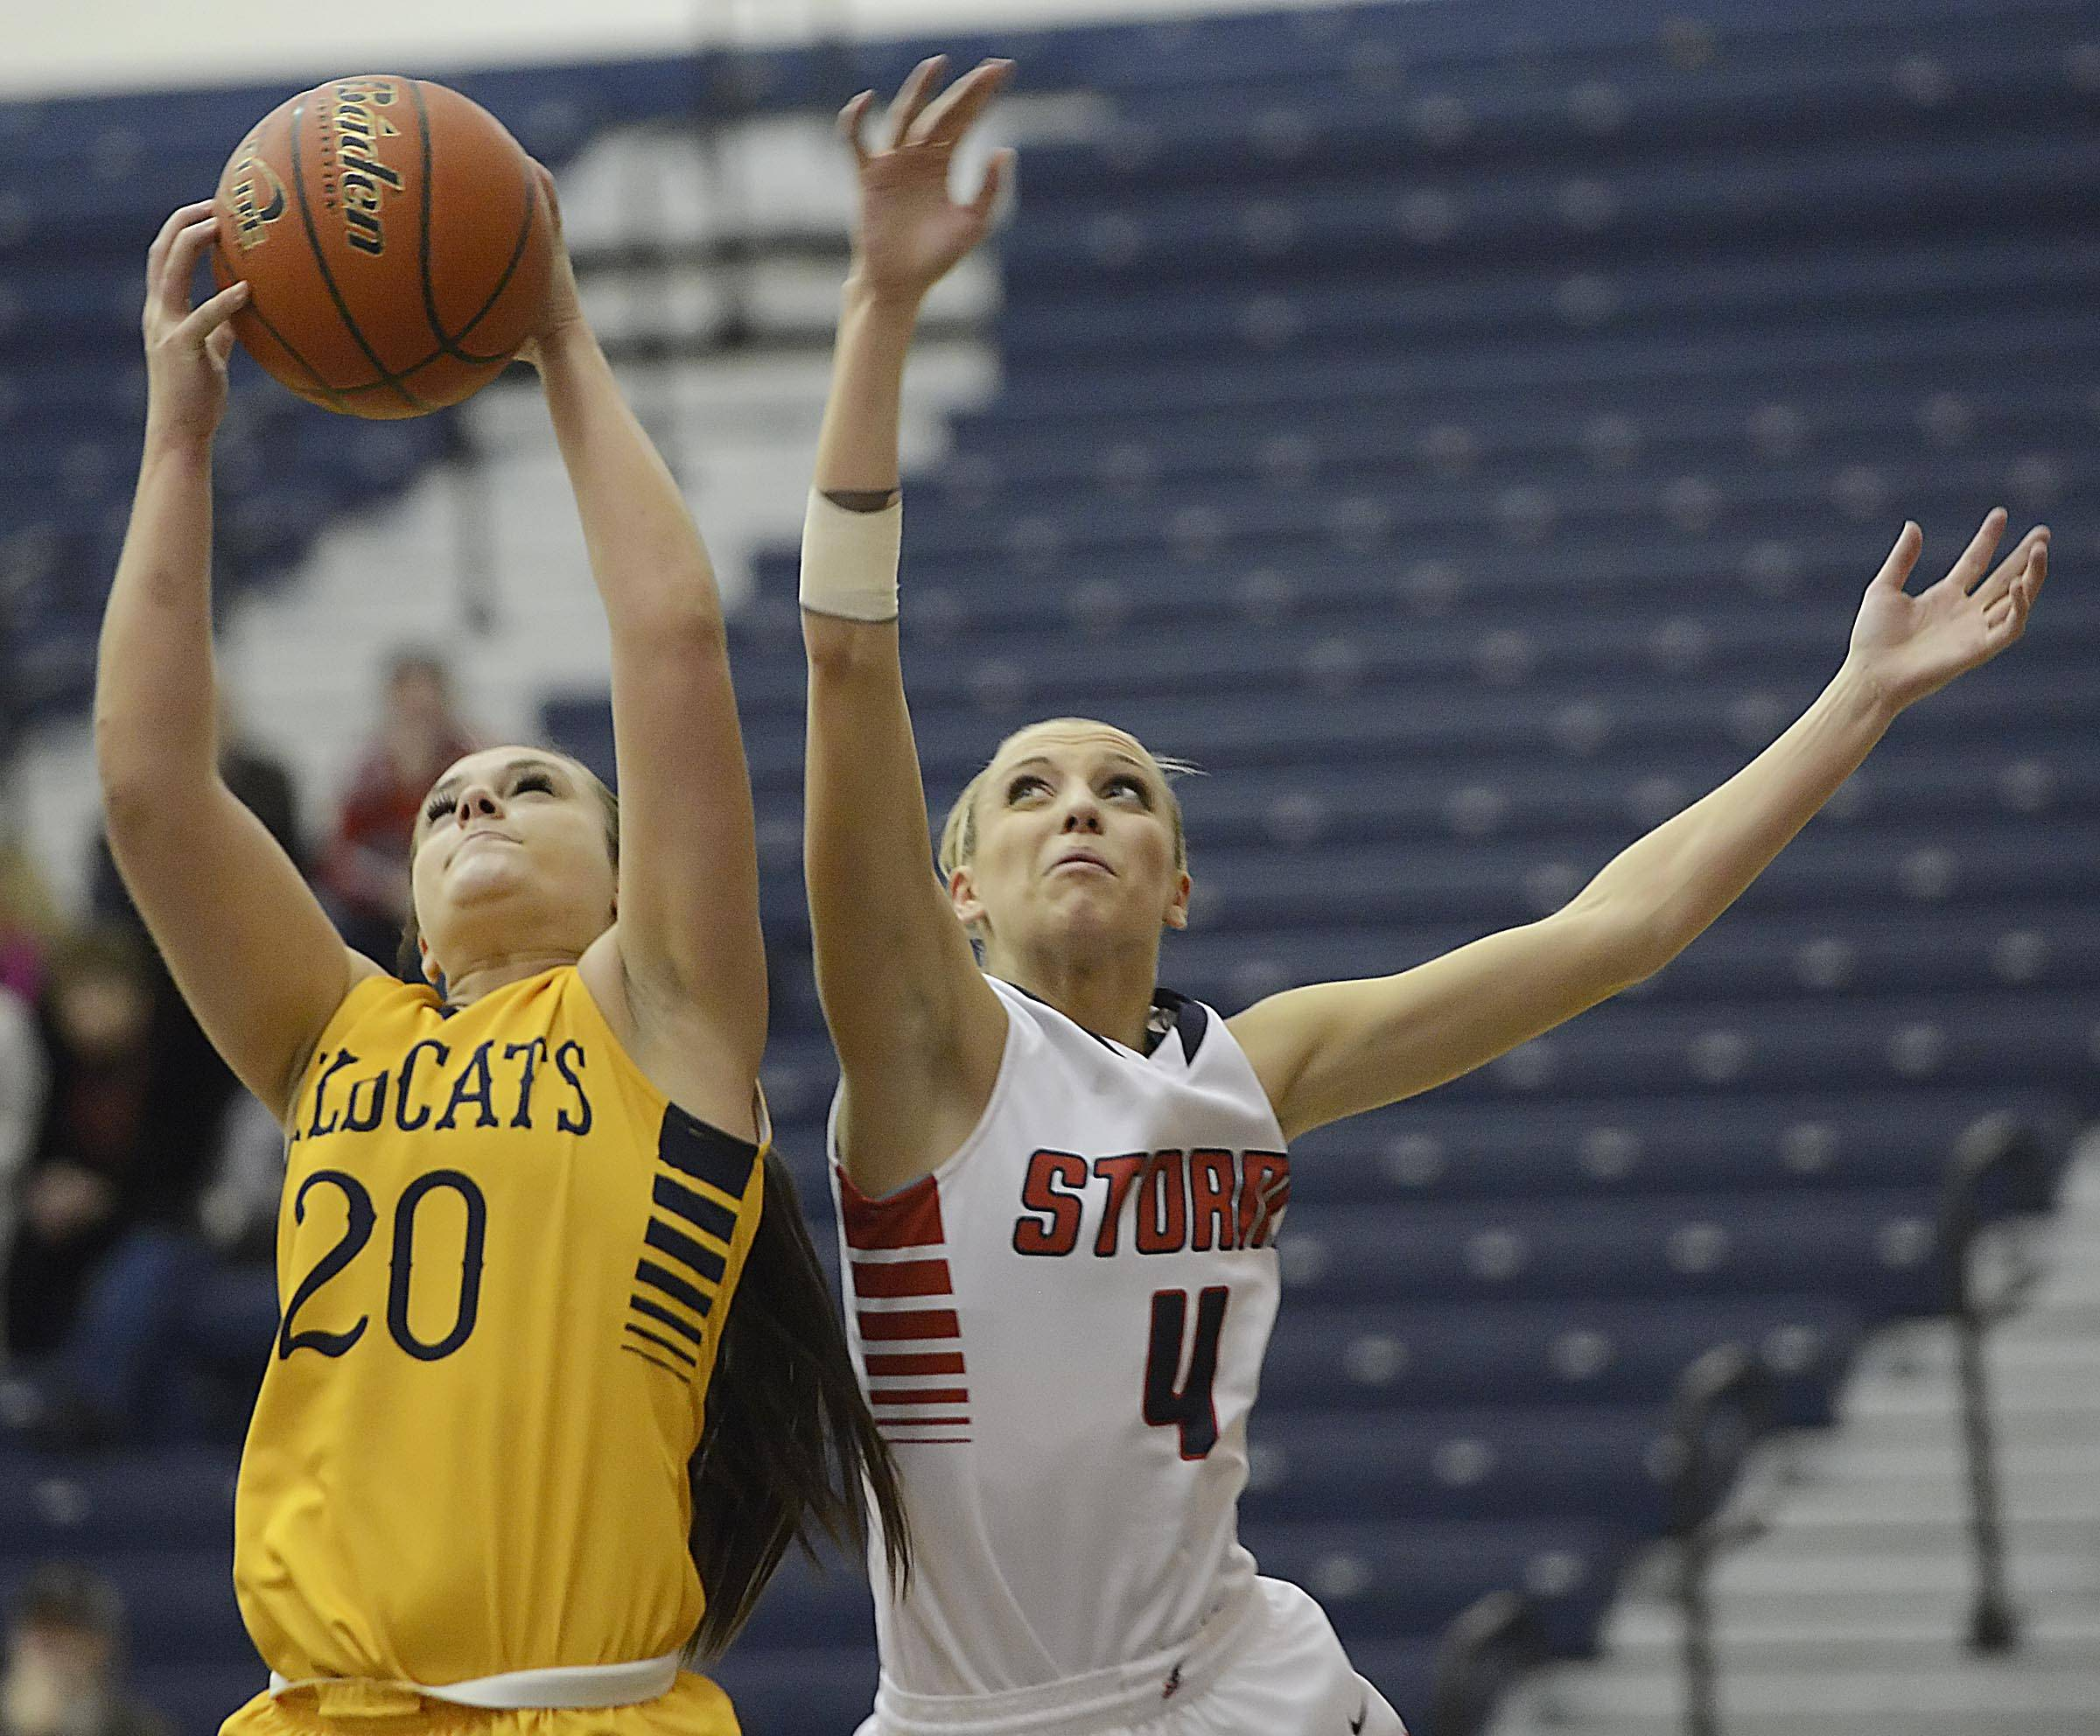 Neuqua Valley's Niki Lazar takes a rebound from South Elgin's Savanah Uvegas Monday in South Elgin.